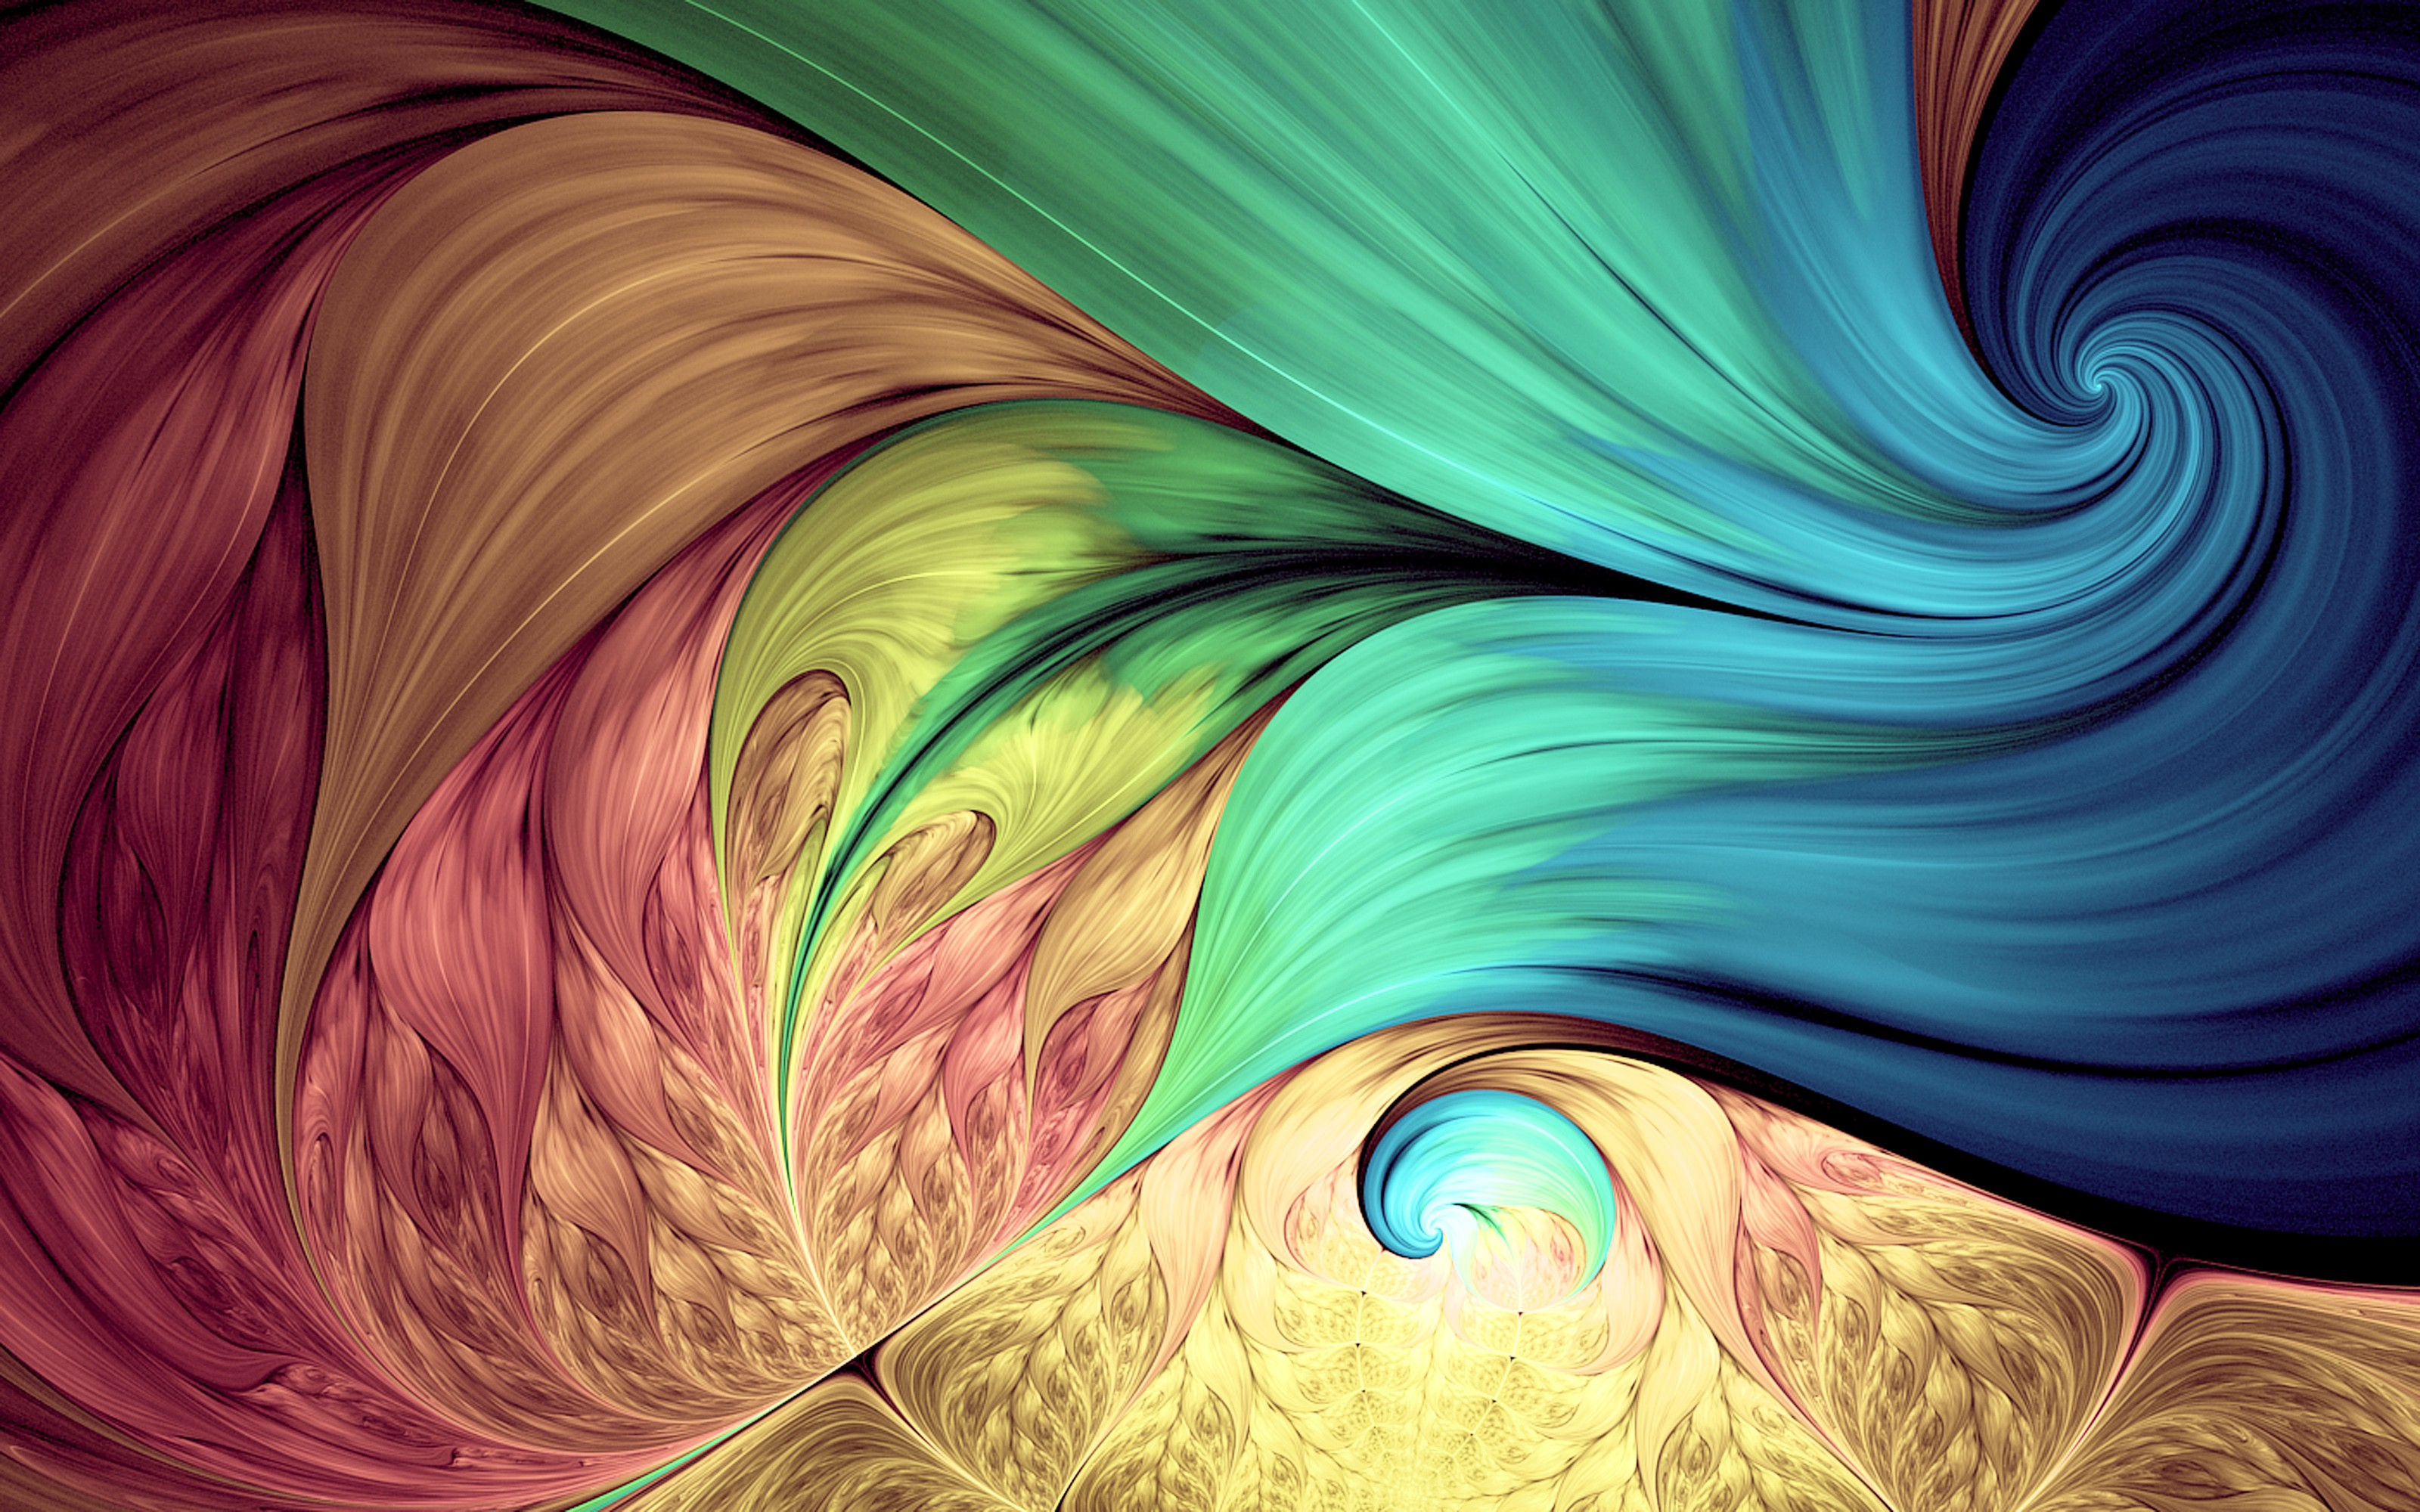 Image of colorful swirls—dark pink, yellow, blue and green